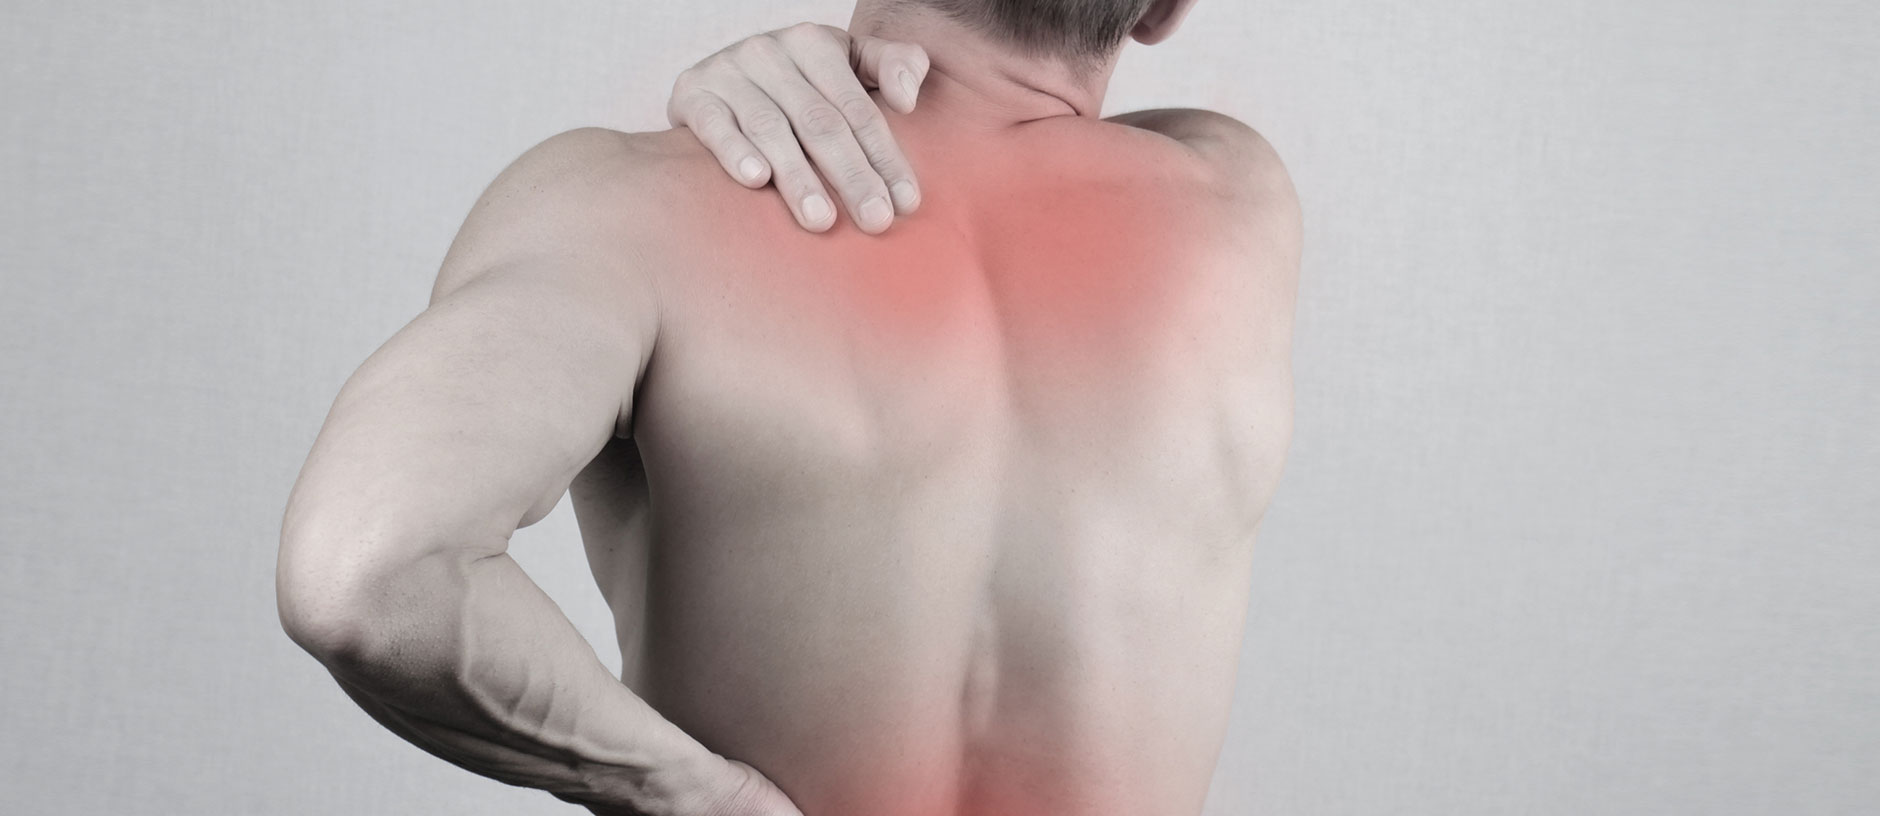 Stem Cell Therapy for Back and Shoulder Pain